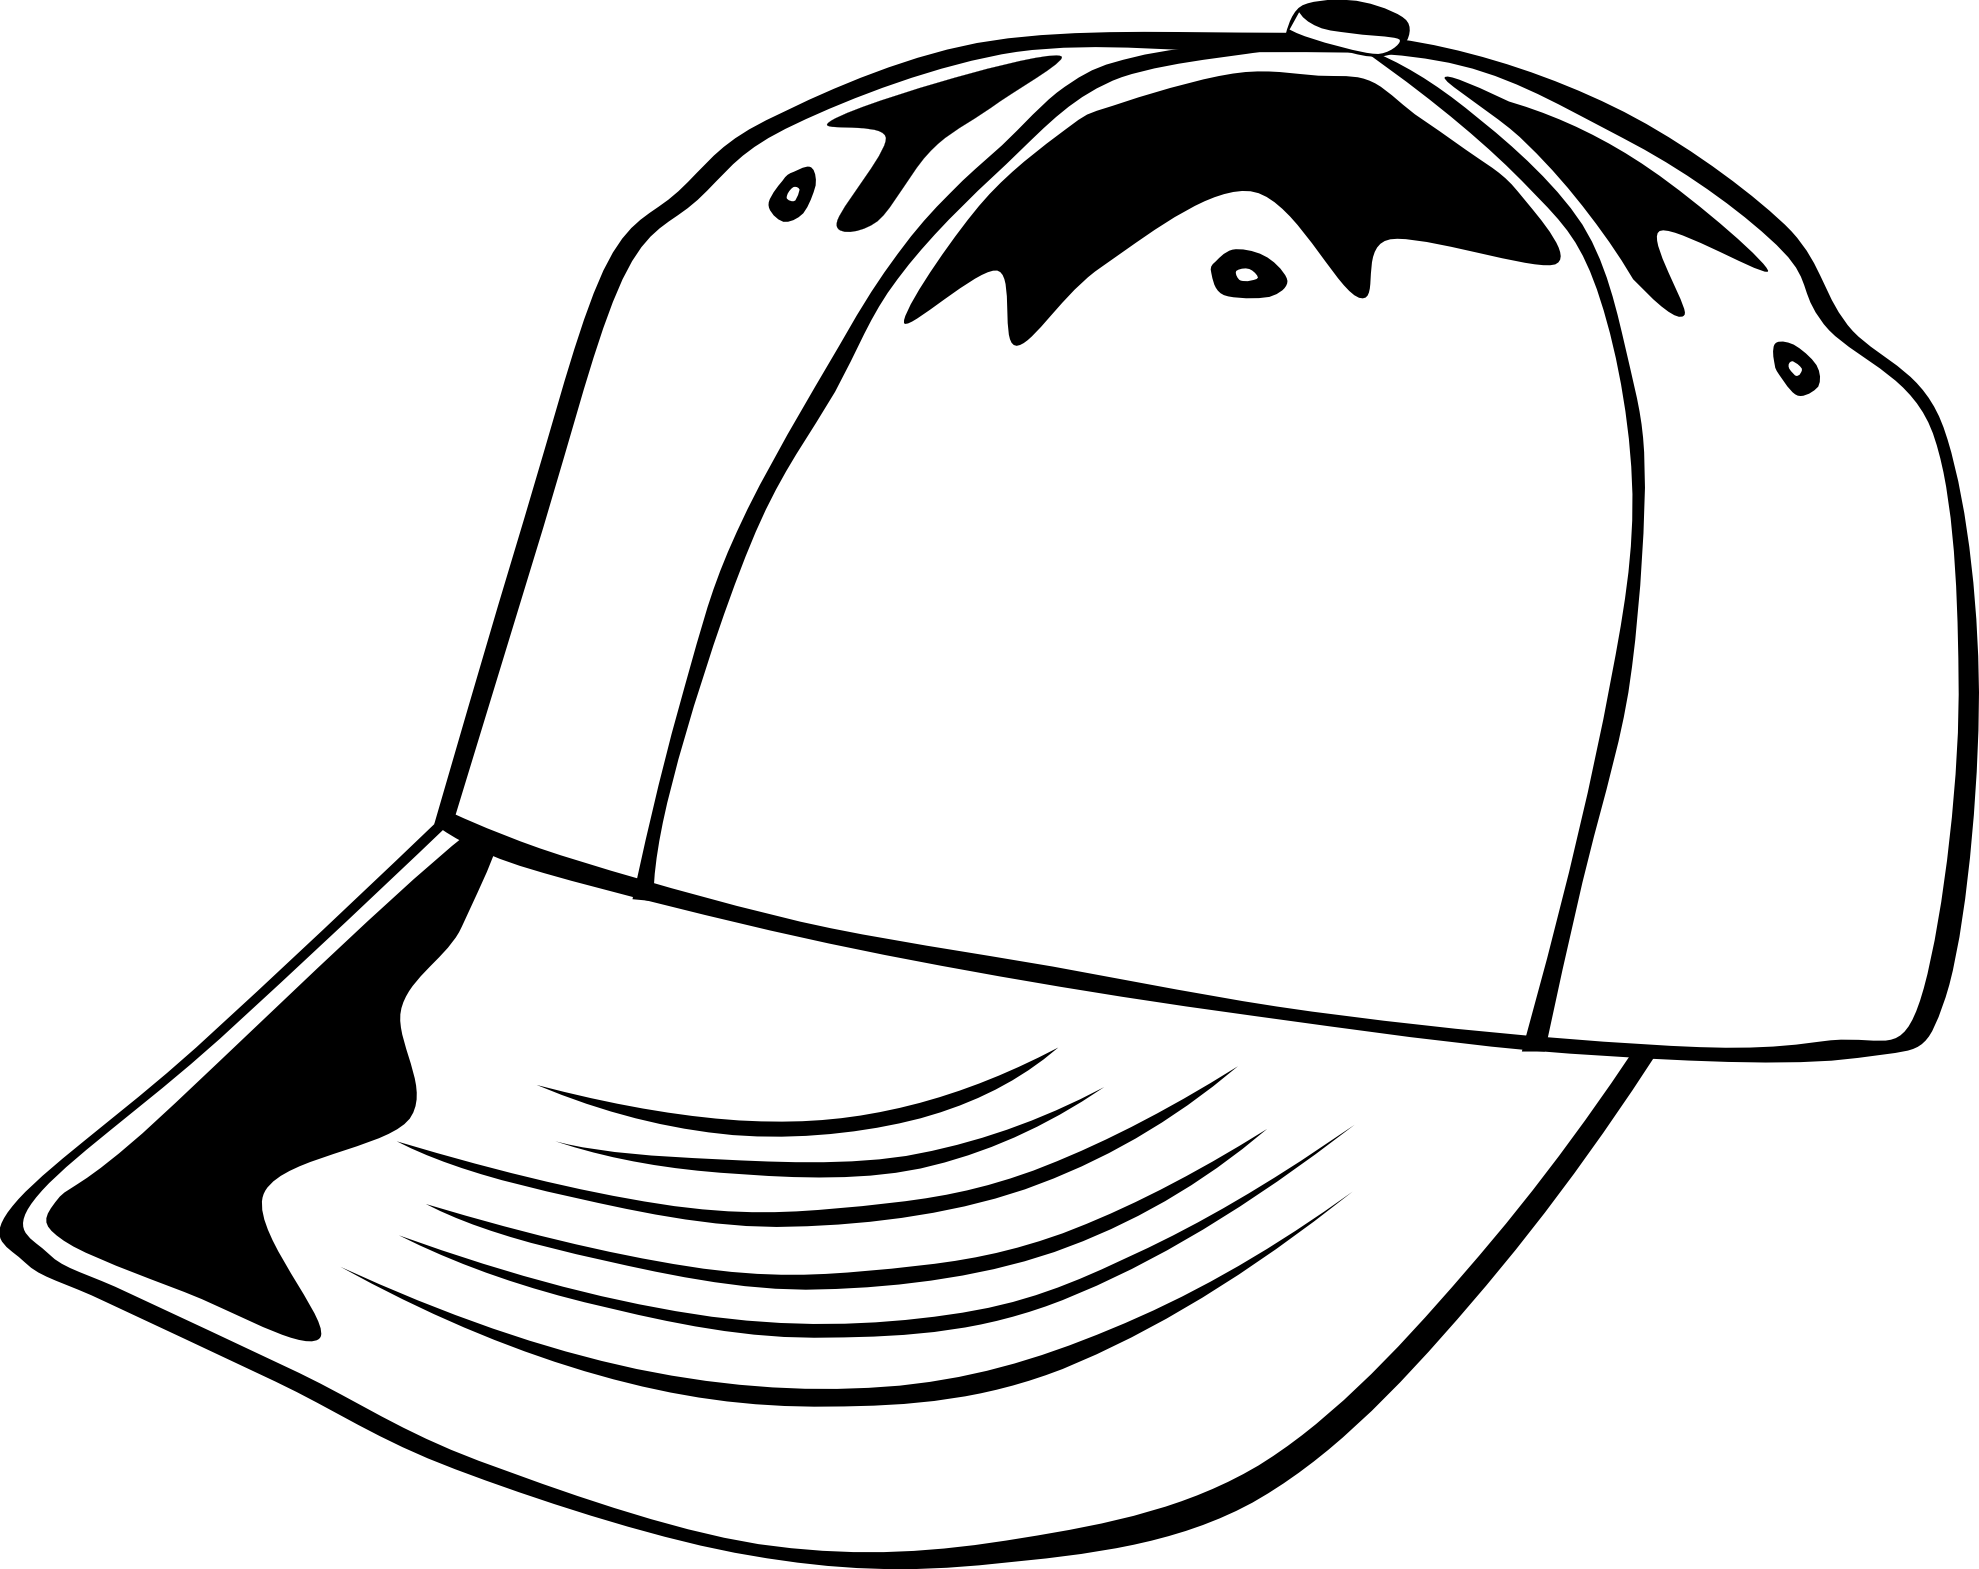 Baseball hat back clipart black and white picture royalty free library Baseball black and white baseball clipart black and white clipart 3 ... picture royalty free library